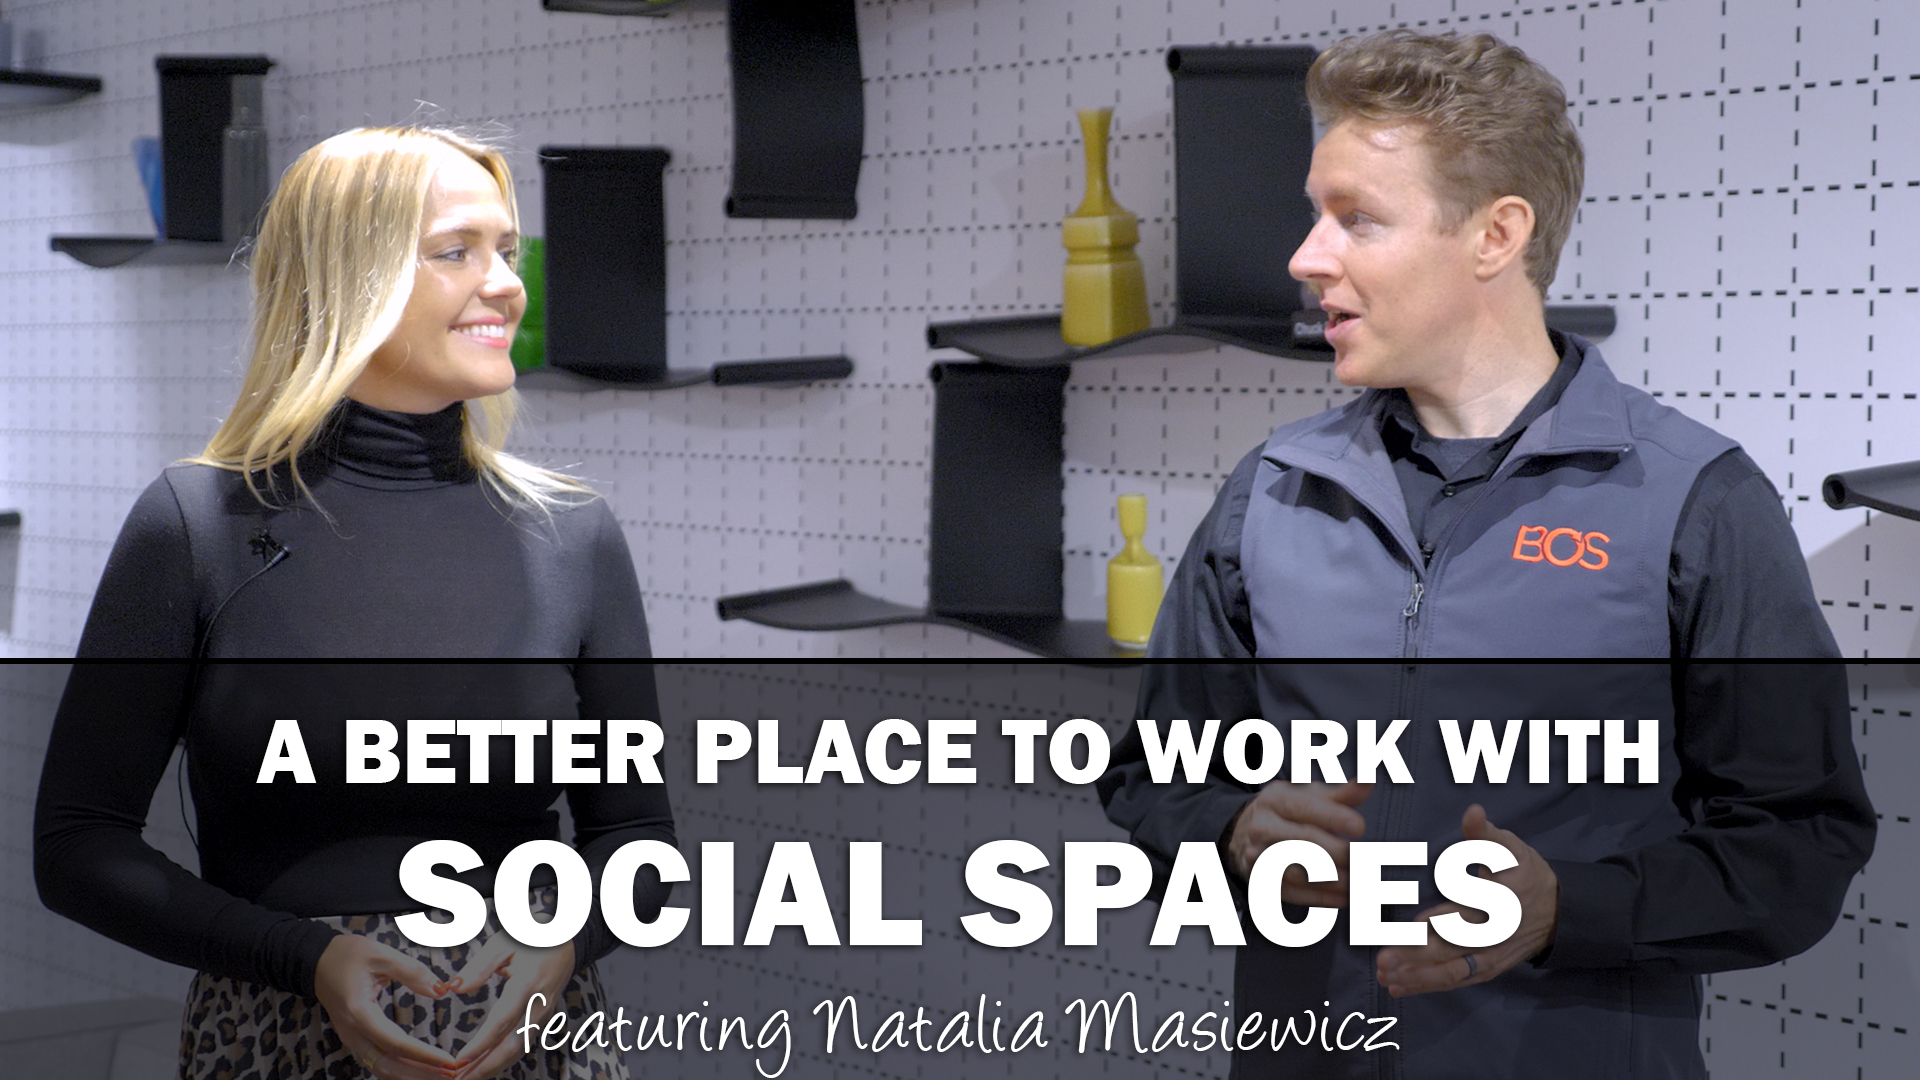 Modern Social Spaces Better Place to Work